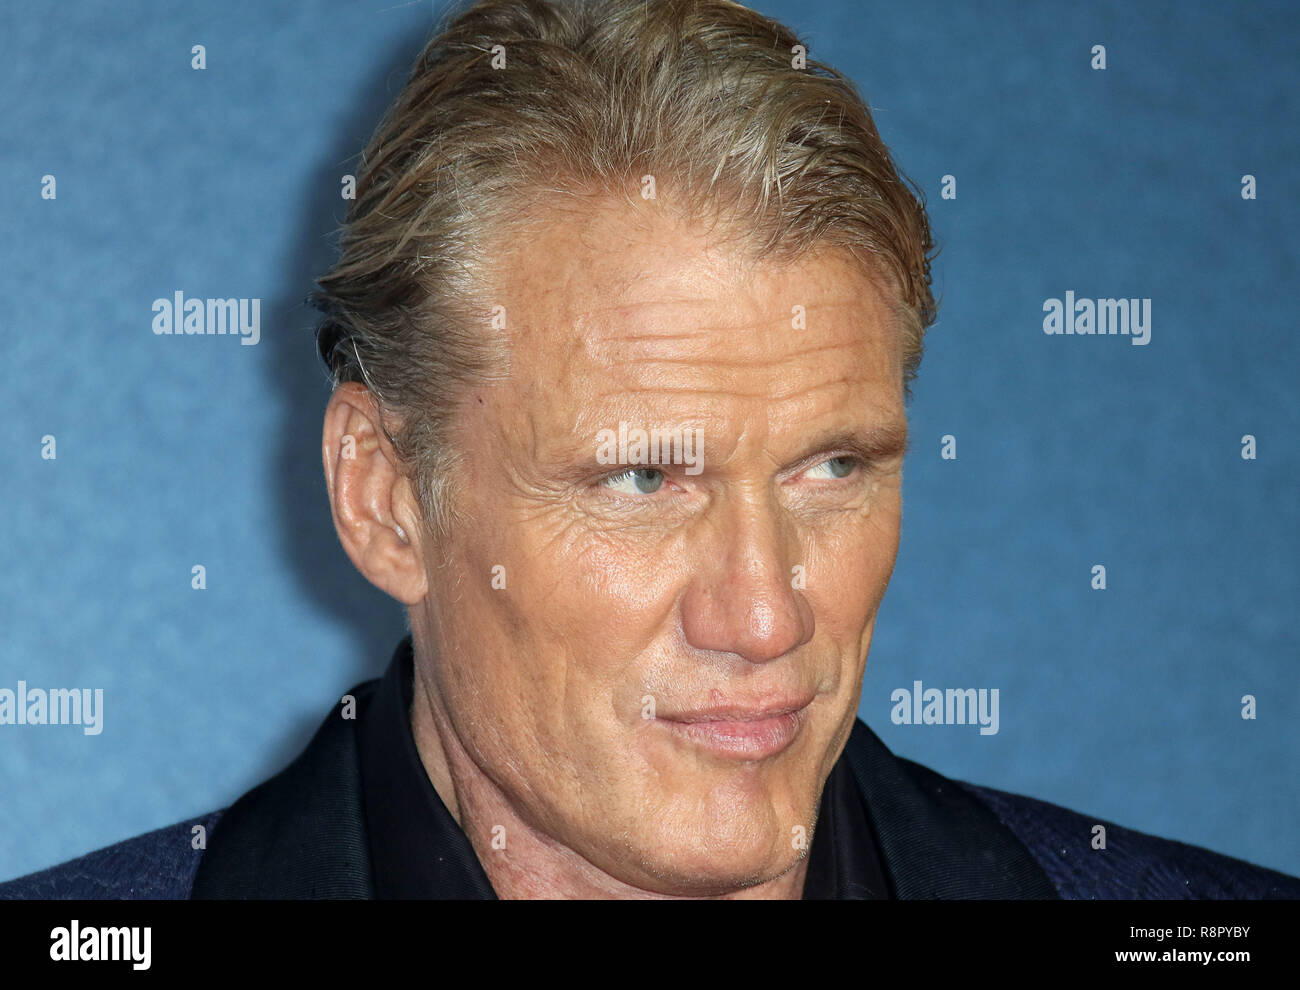 Nov 28, 2018  - Dolph Lundgren  attending Creed II European Premiere, BFI IMAX in London, UK - Stock Image